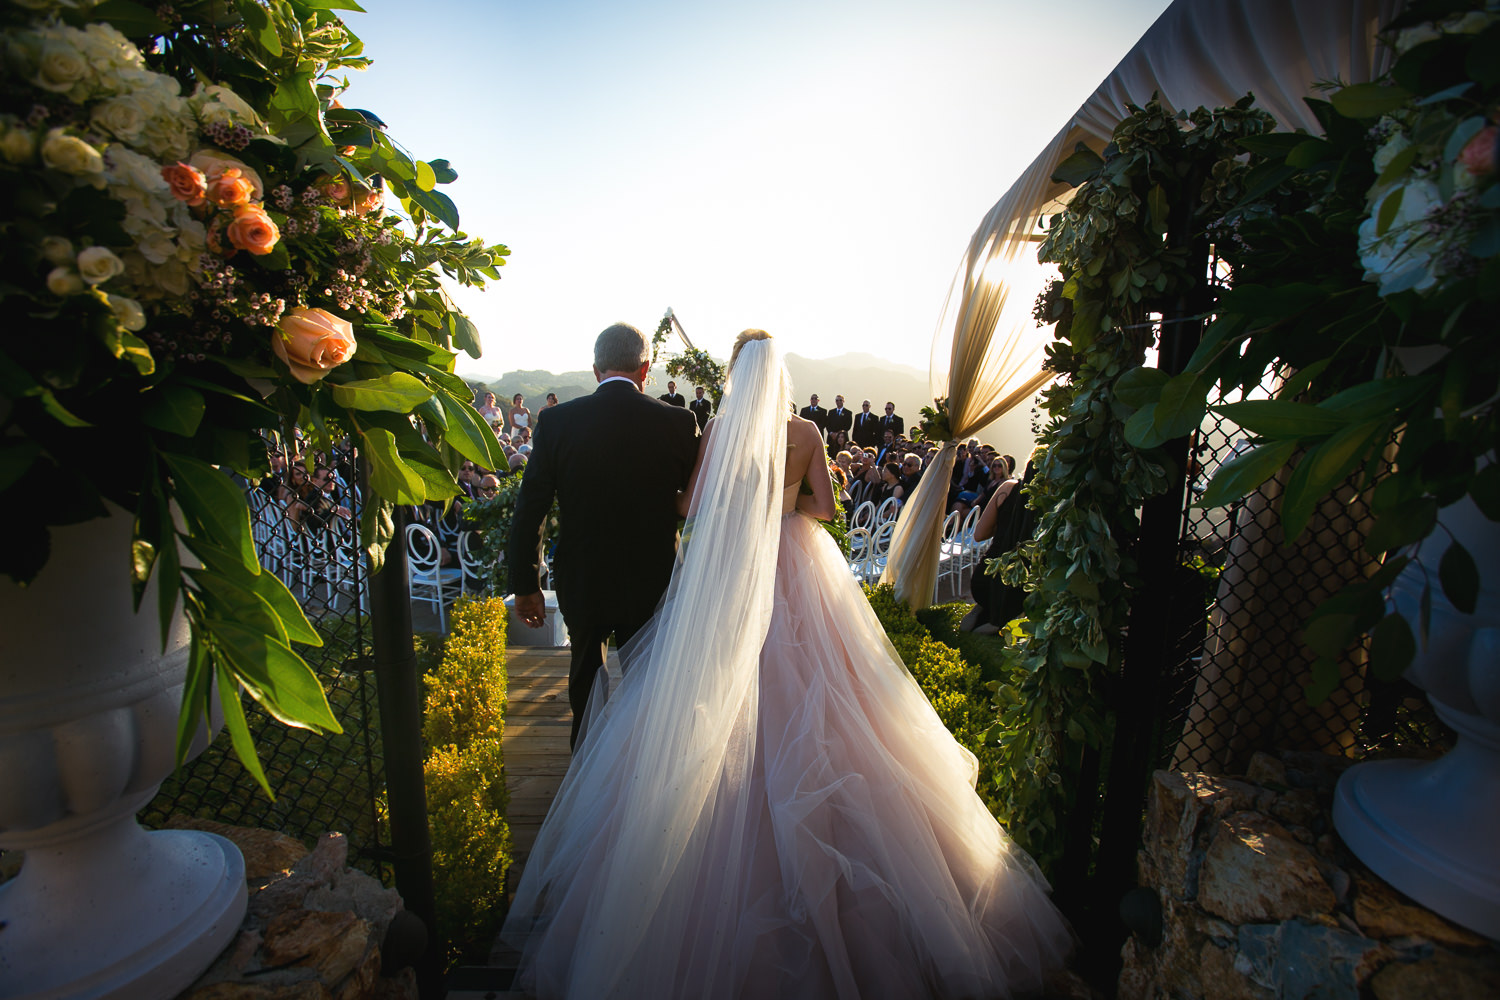 Malibu Rocky Oaks Photographer - Bride Walking The Aisle